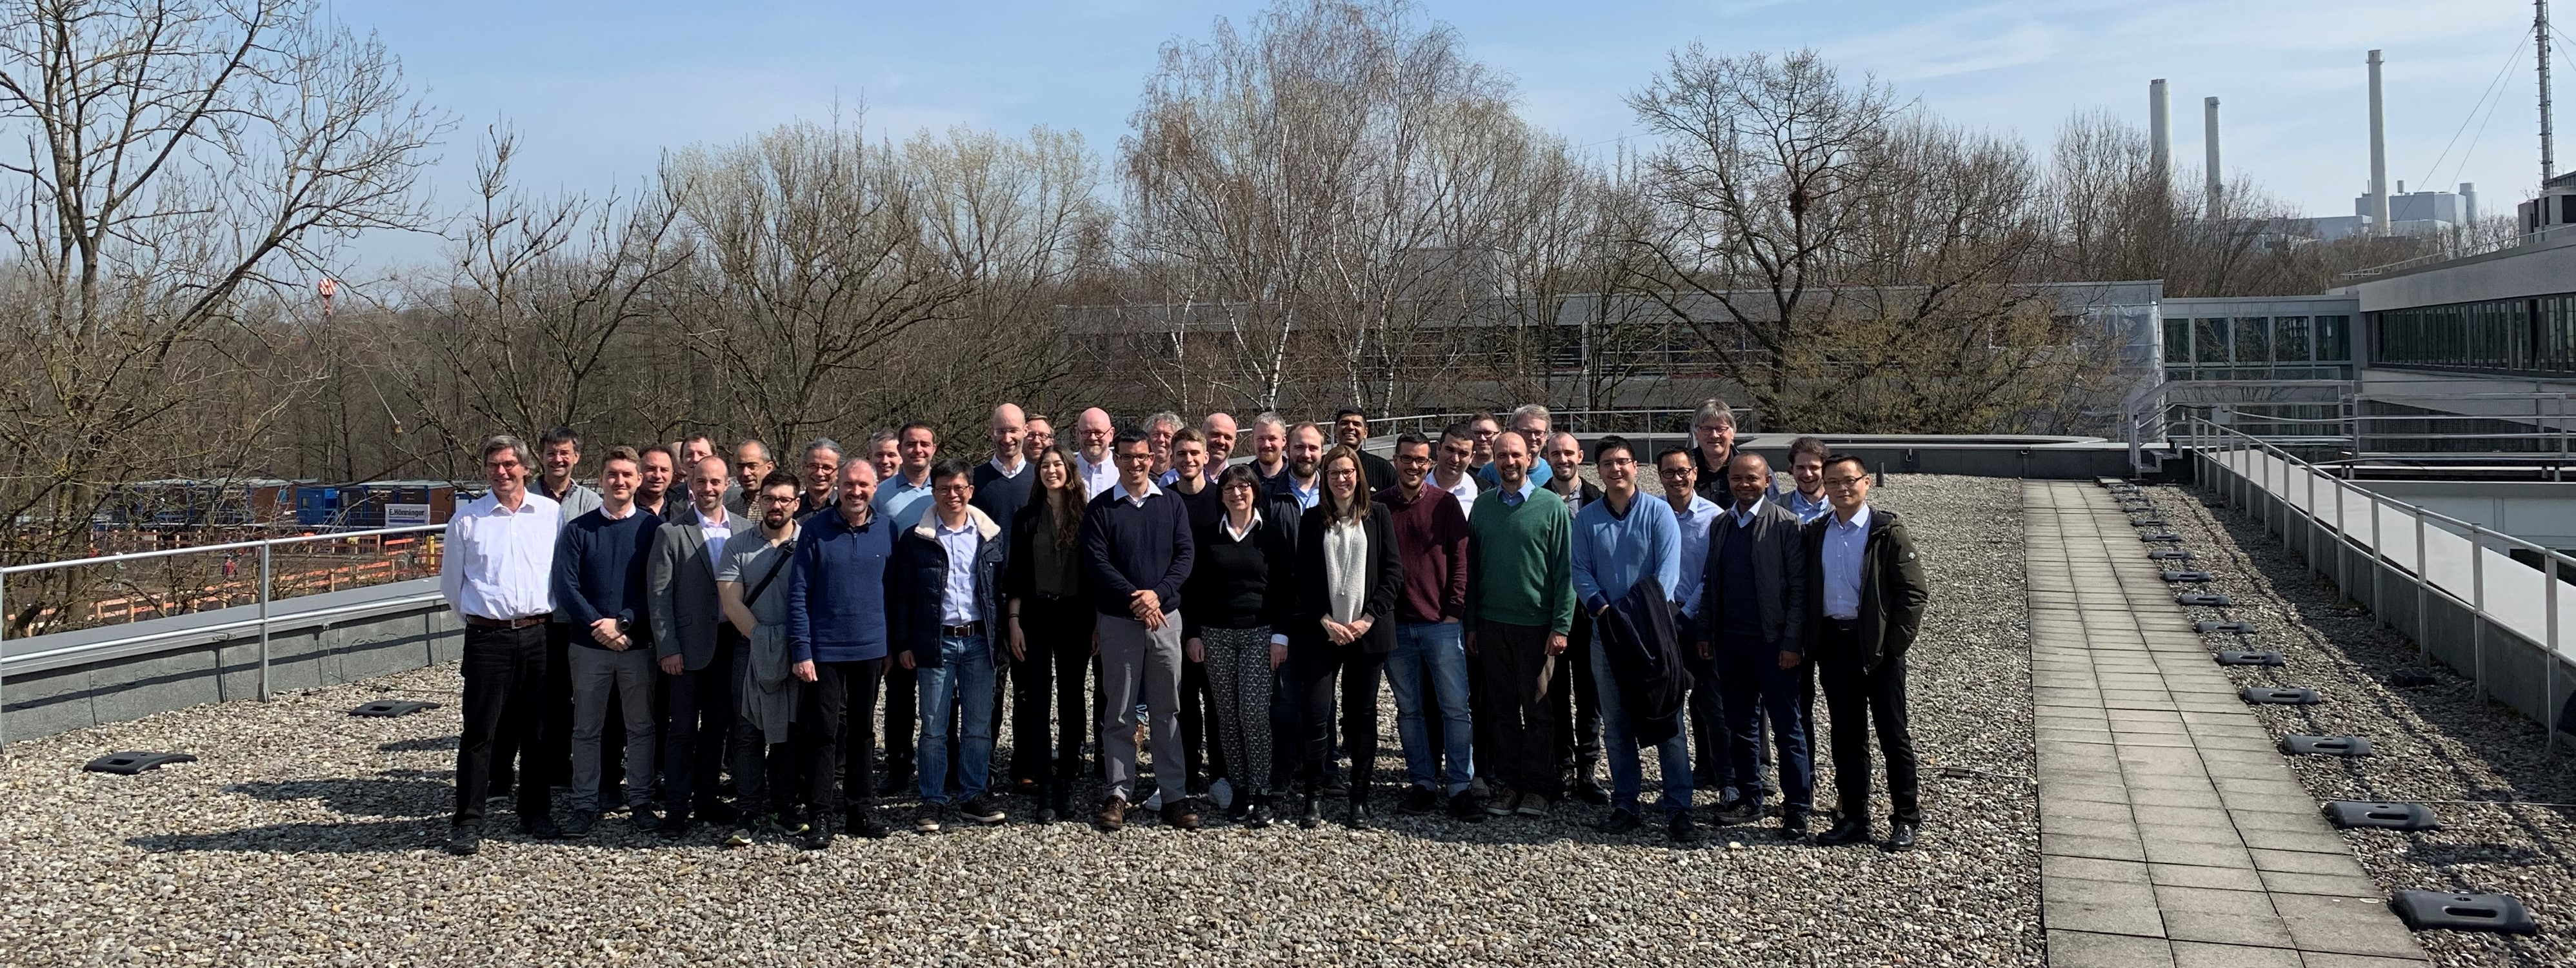 5G-Xcast 8th Face-to-Face Meeting hosted by IRT in Munich